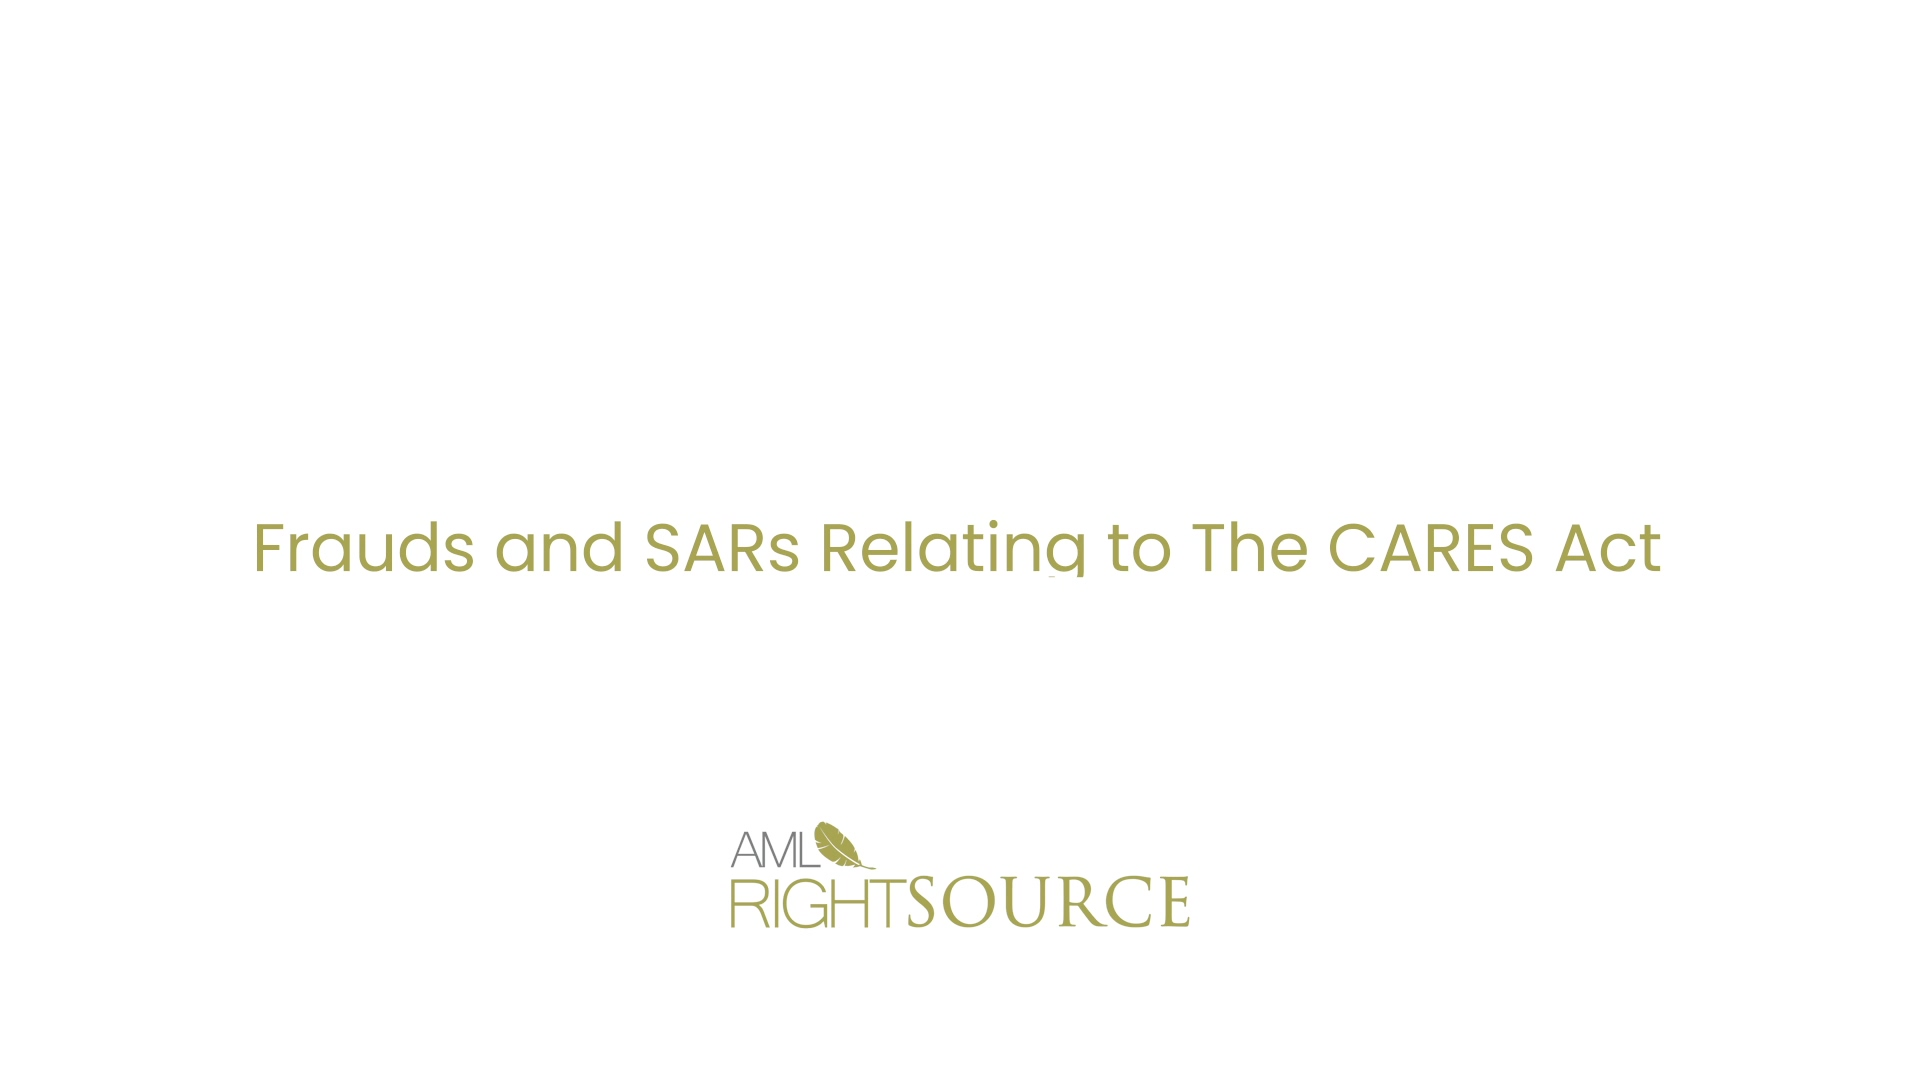 Frauds and SARs Relating to The CARES Act